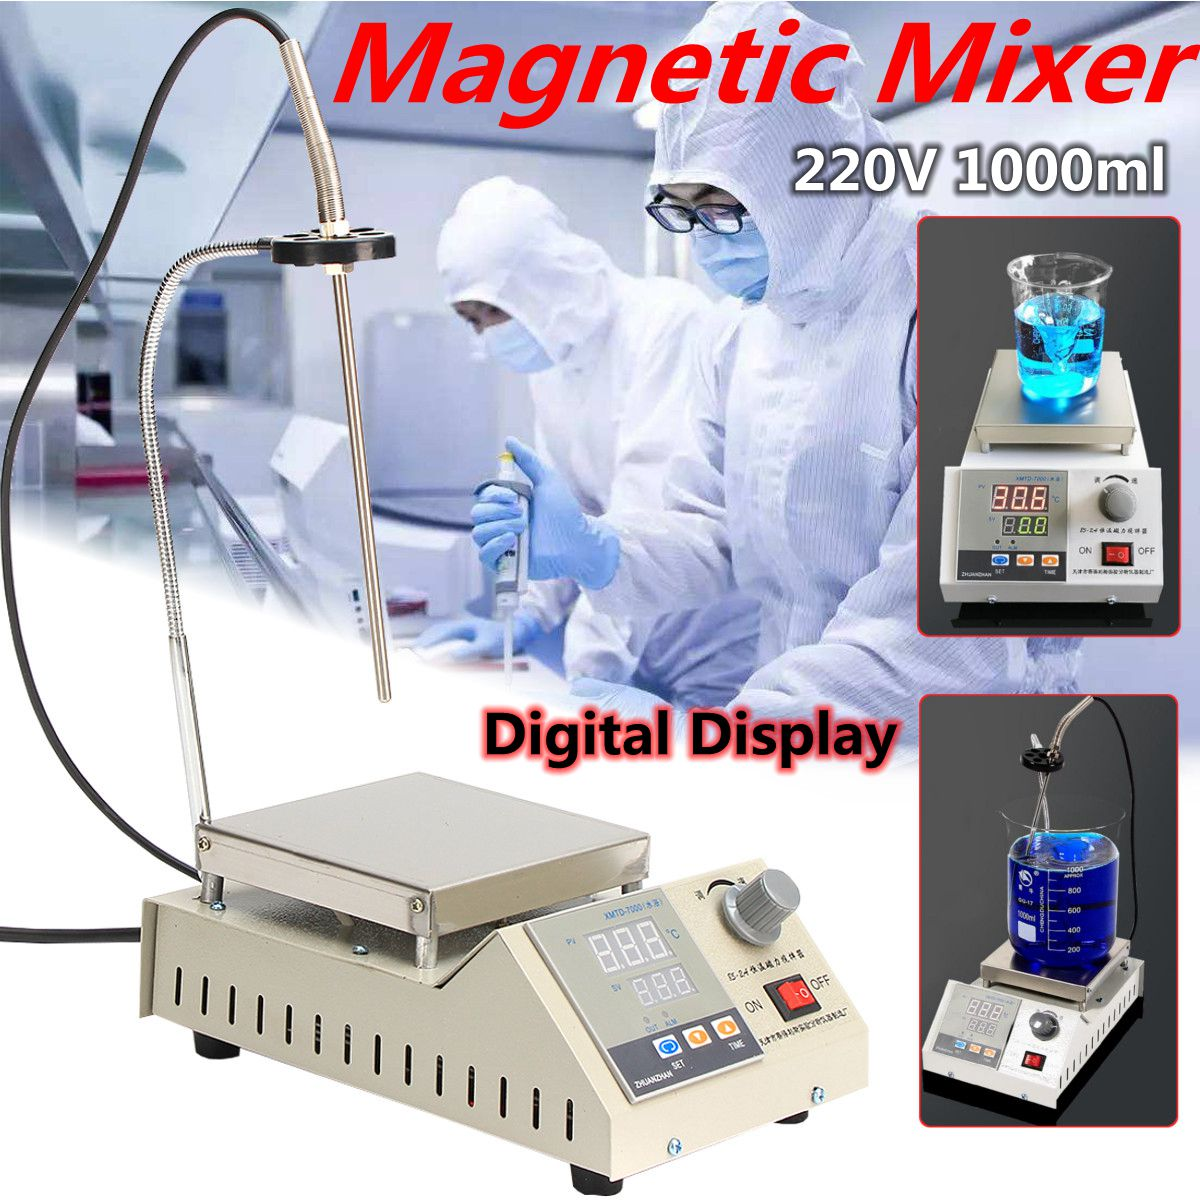 220V 85-2/85-2A Magnetic Stirrer with Digital Thermostat Hot Plate Heating Mixer 2400rpm Heating Medical Laboratory Tool220V 85-2/85-2A Magnetic Stirrer with Digital Thermostat Hot Plate Heating Mixer 2400rpm Heating Medical Laboratory Tool